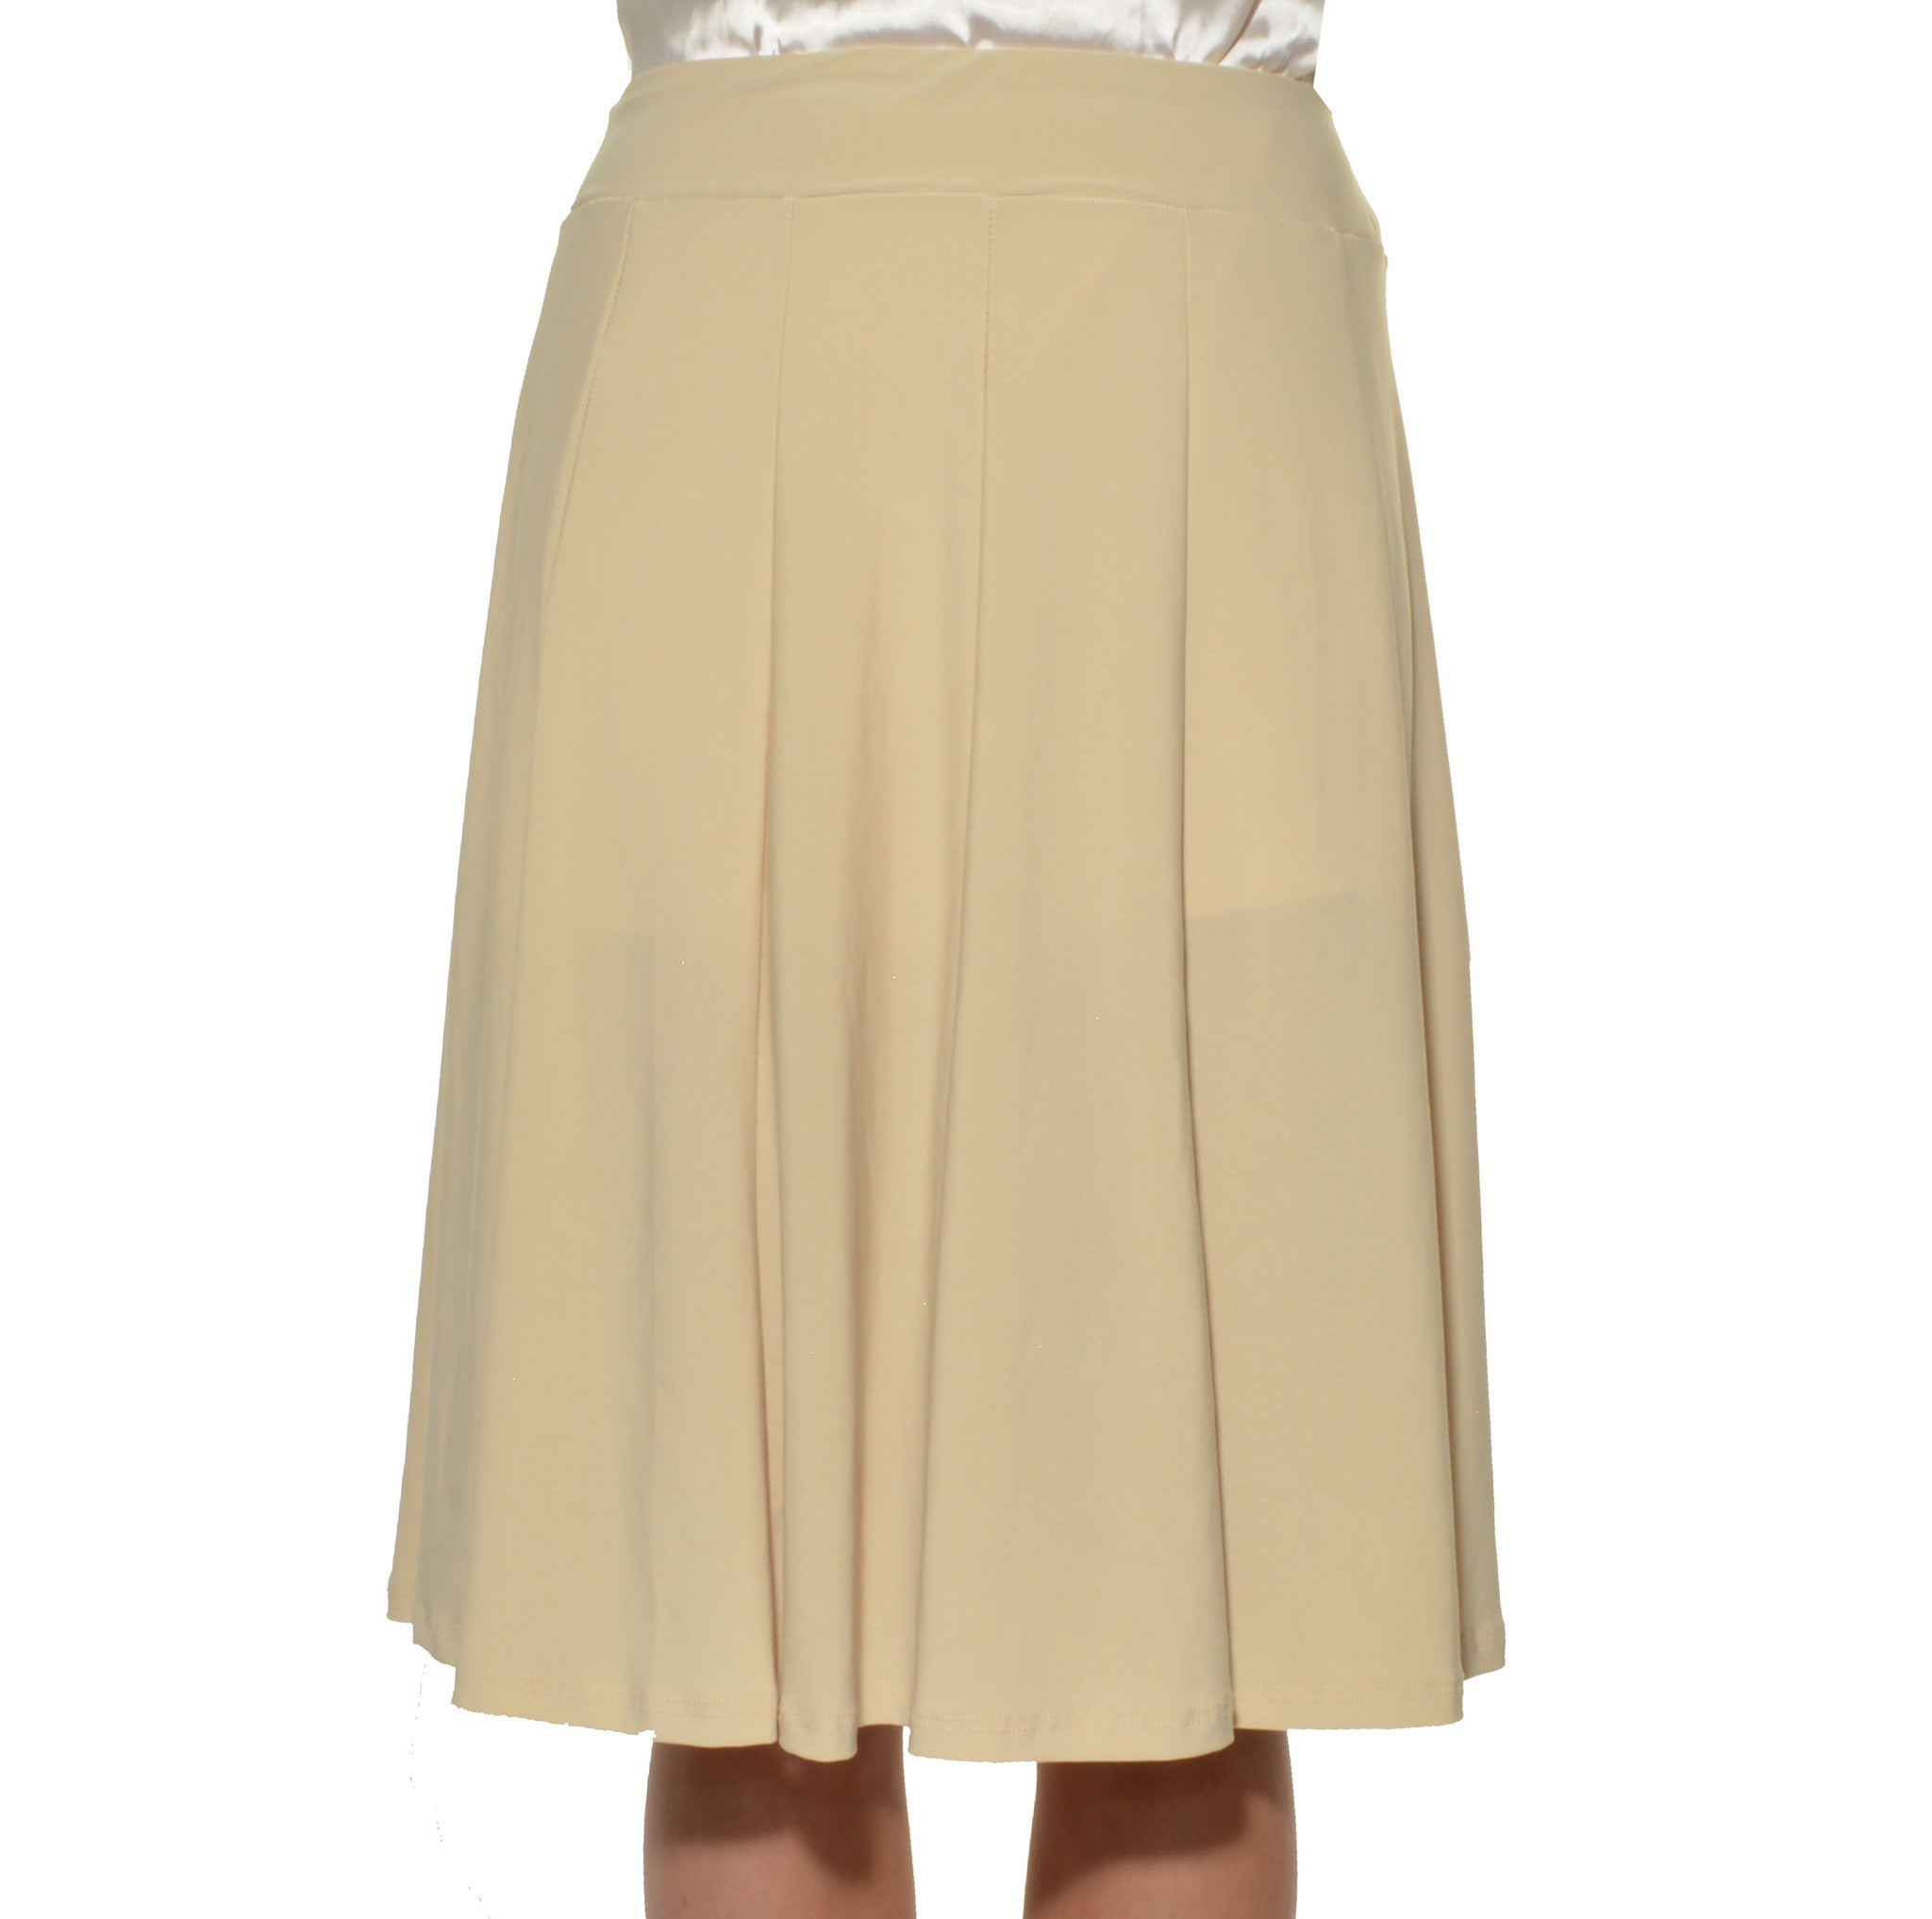 Avital Panel Aline Stretch Skirt (Beige Nude Brown),Skirts,Avital - Discount Divas